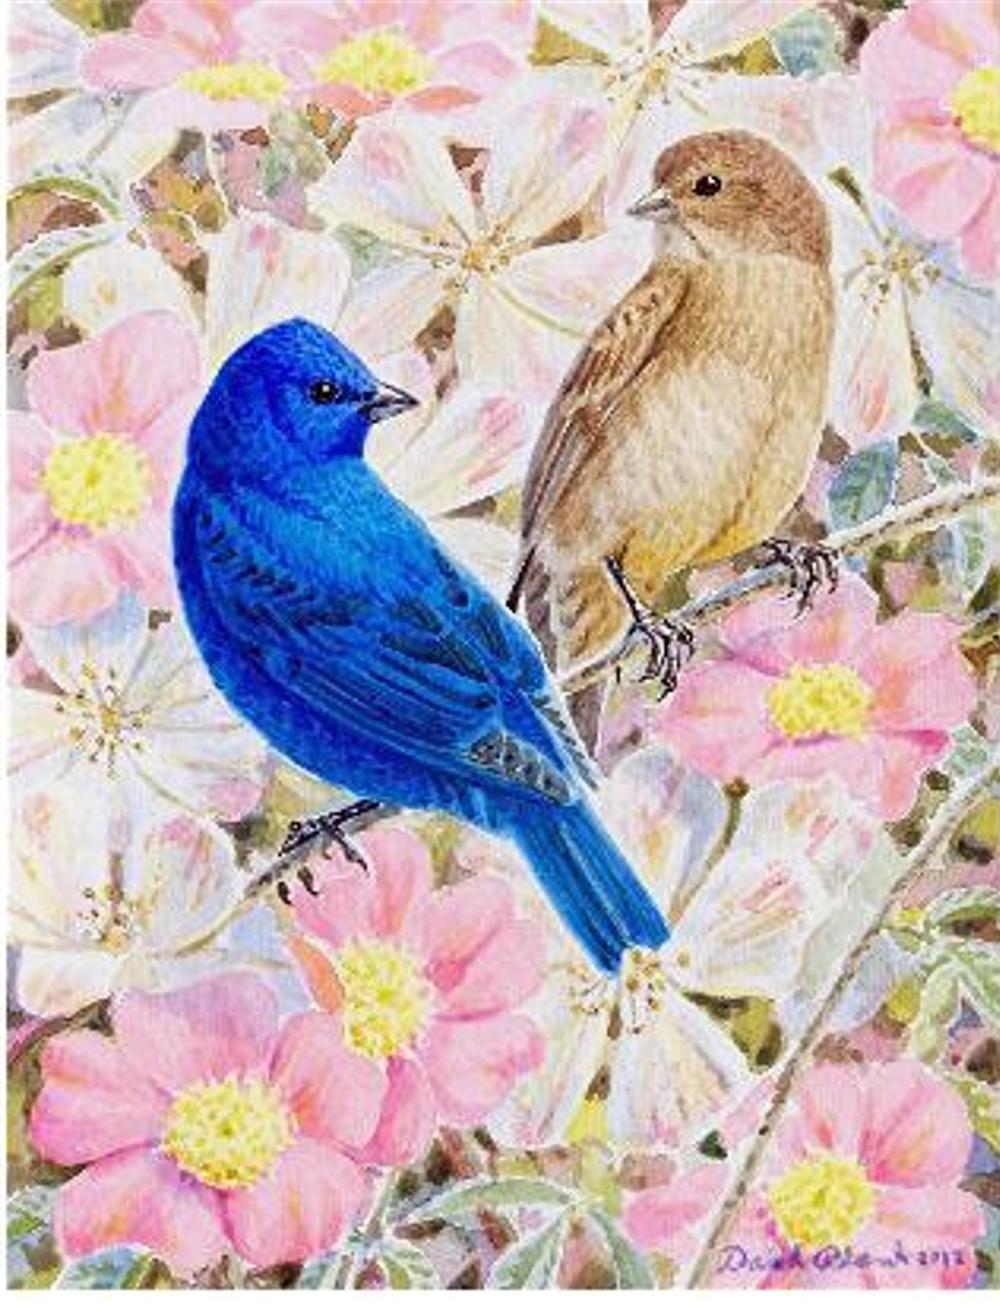 """Indigo Bunting Pair""  Watercolor"